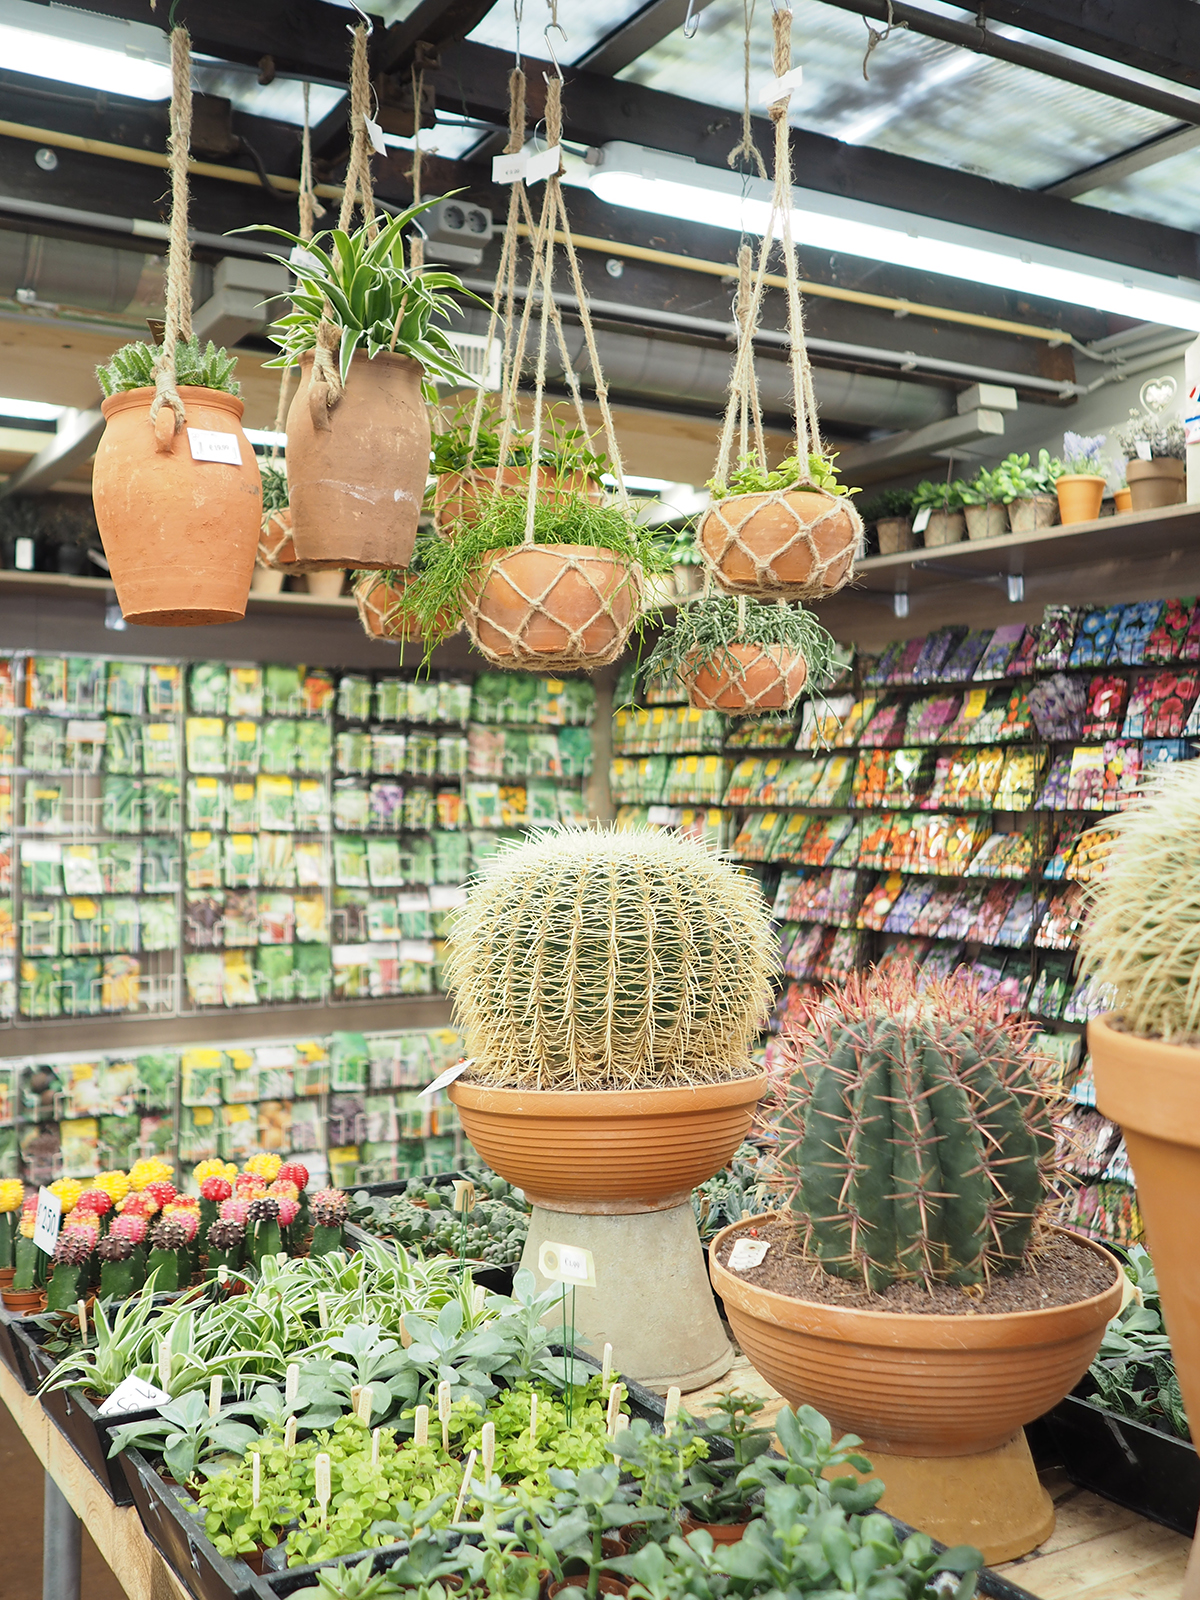 Amsterdam flower market cactus and plant shop